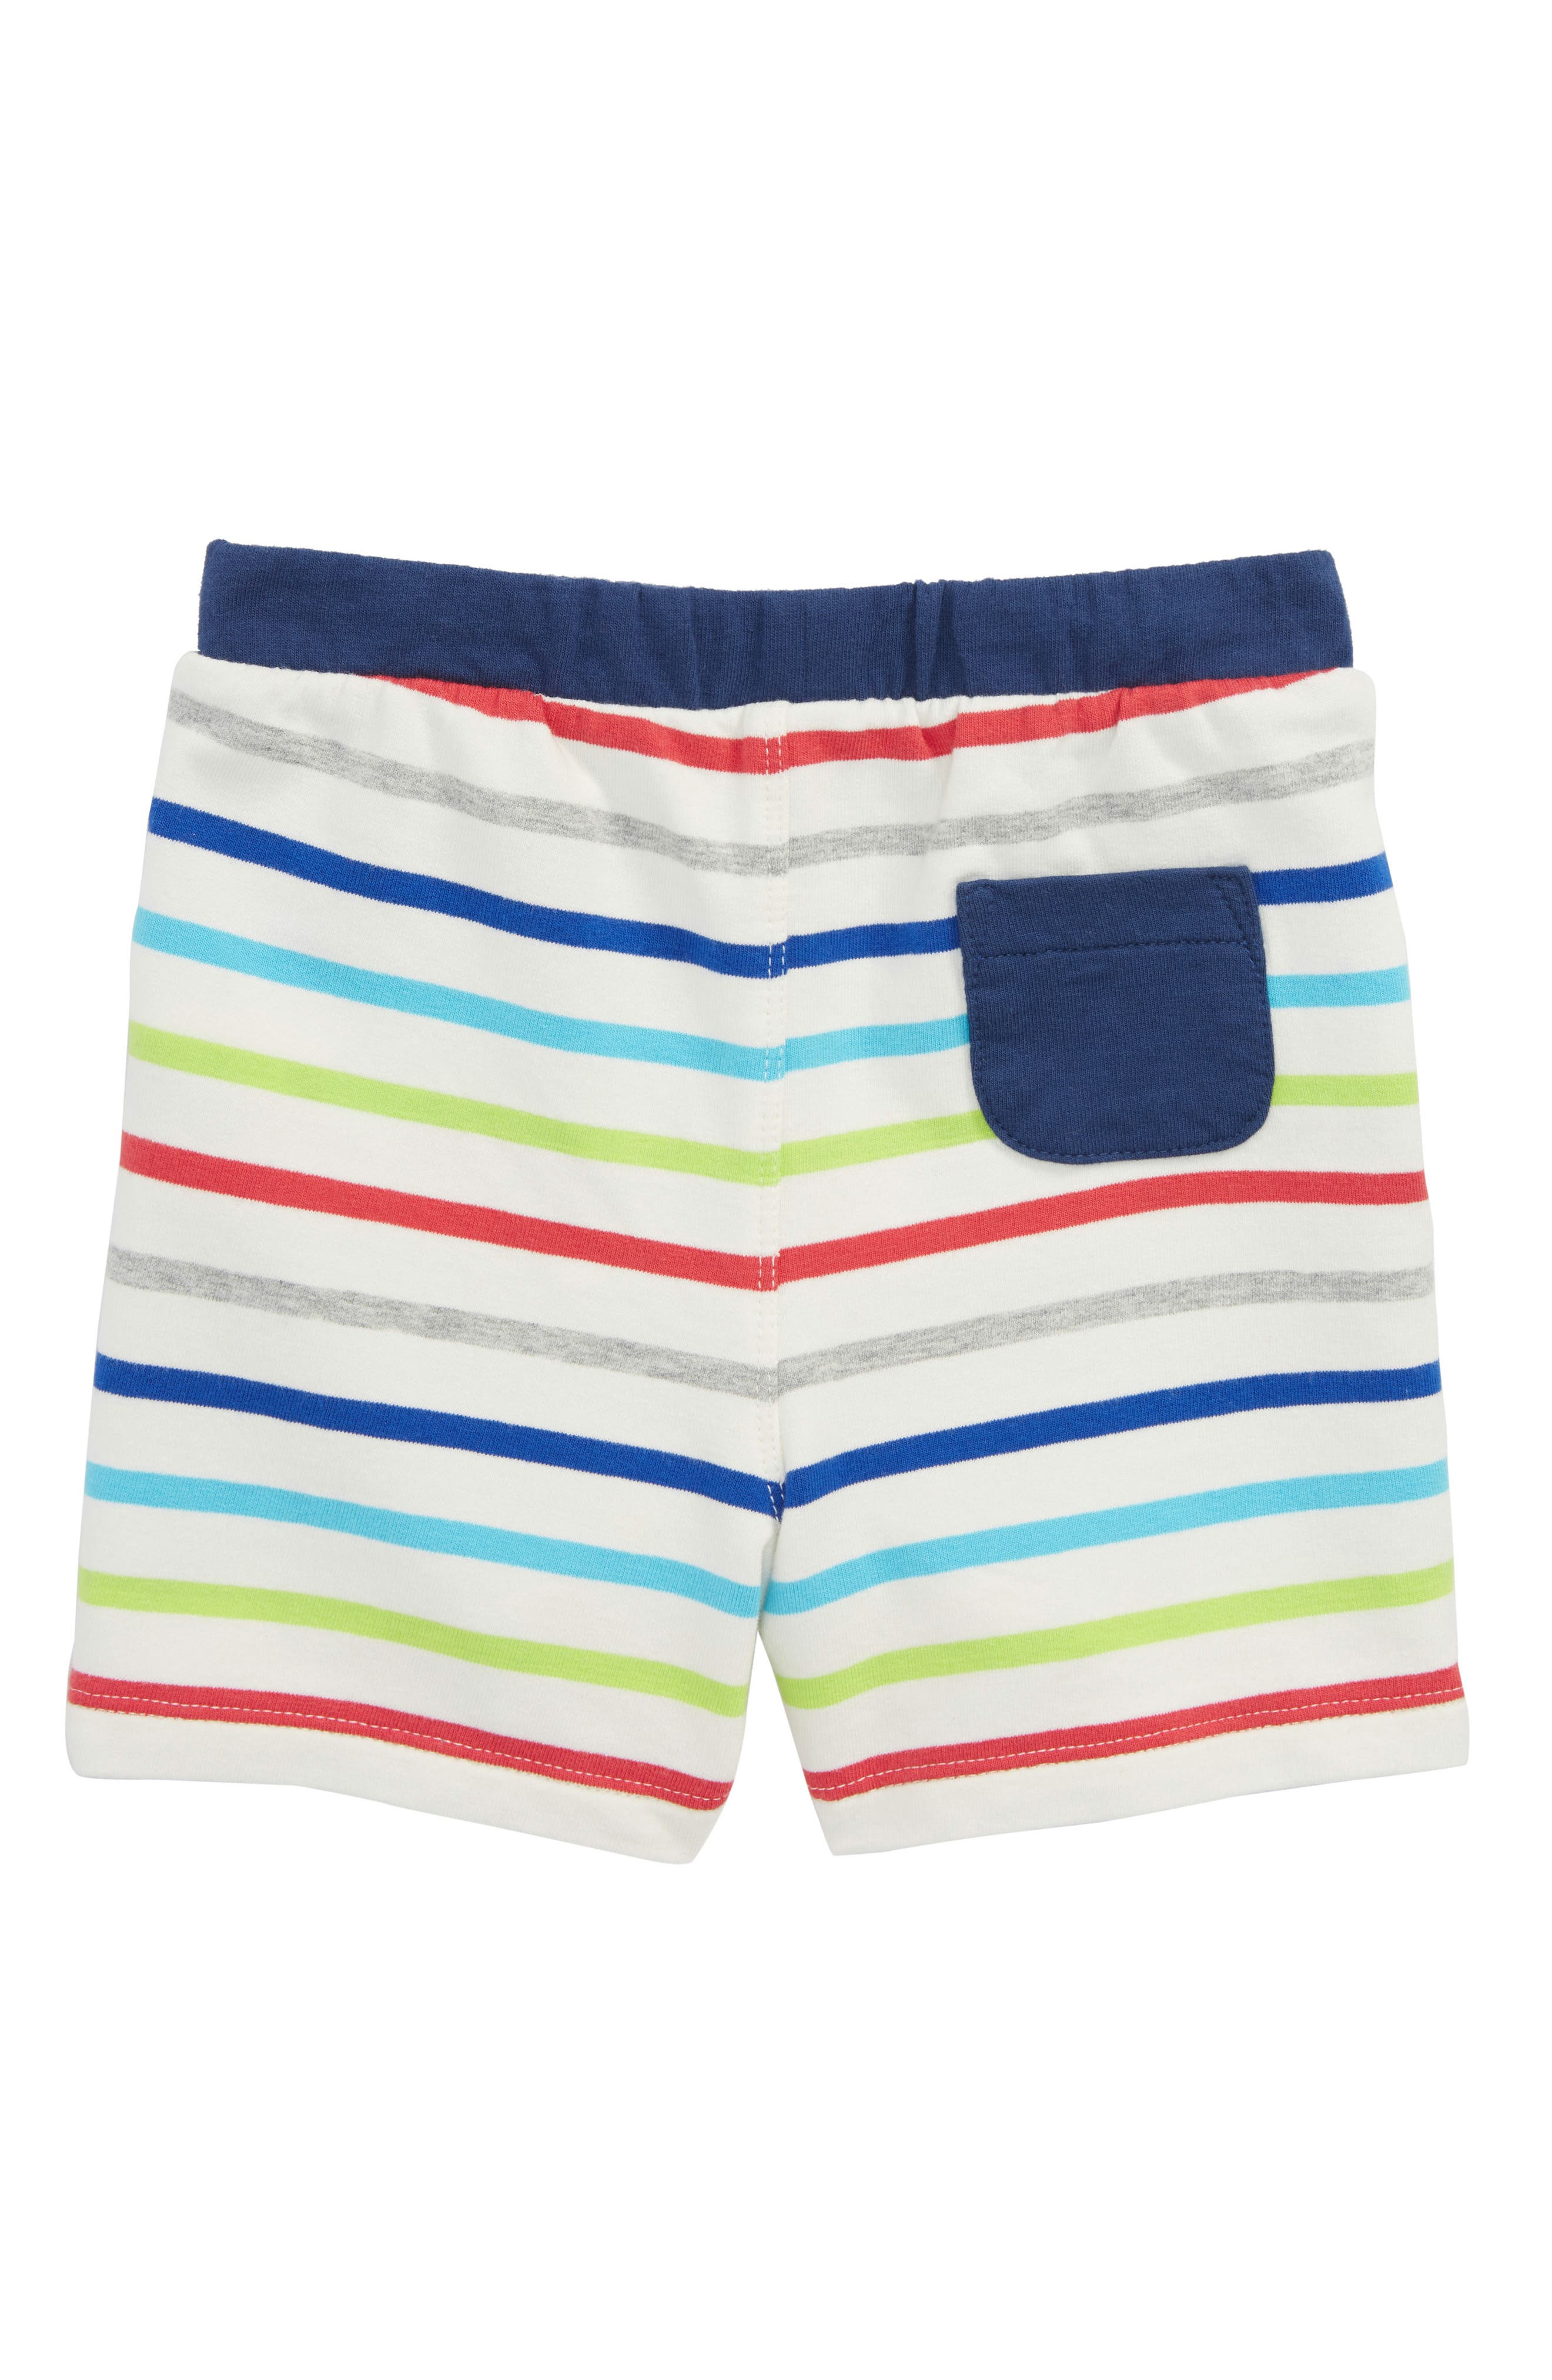 Jersey Shorts,                             Alternate thumbnail 2, color,